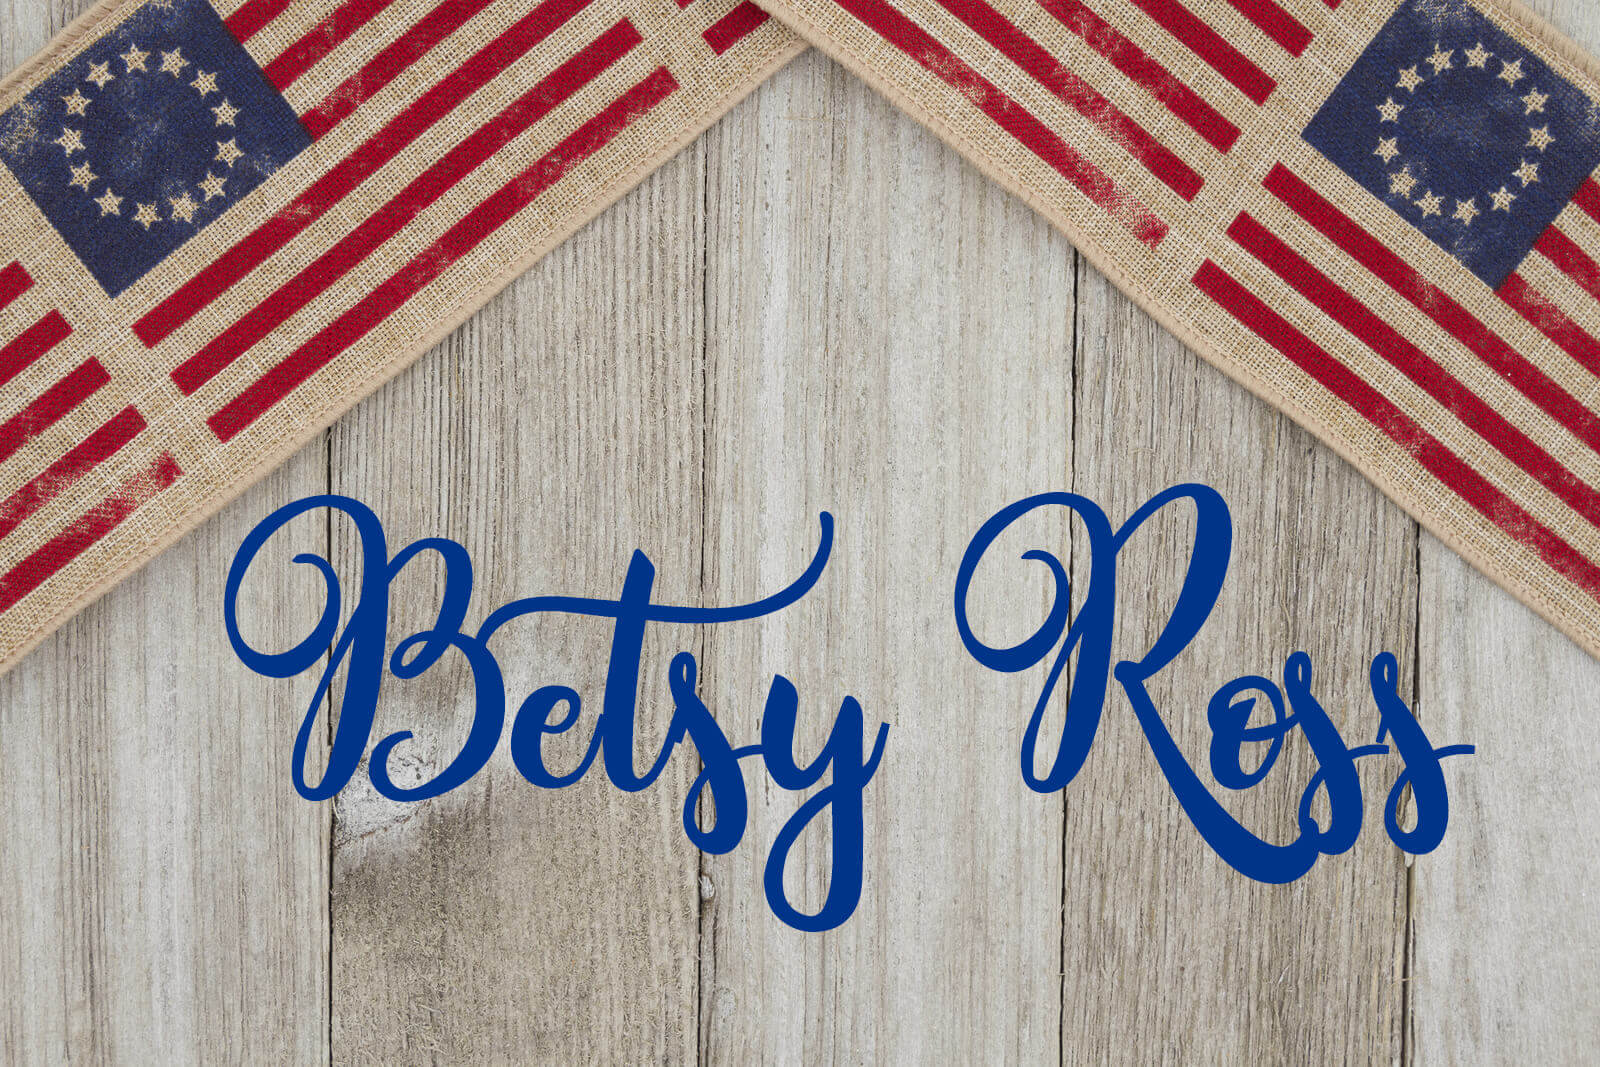 Betsy Ross Resources Surfnetkids